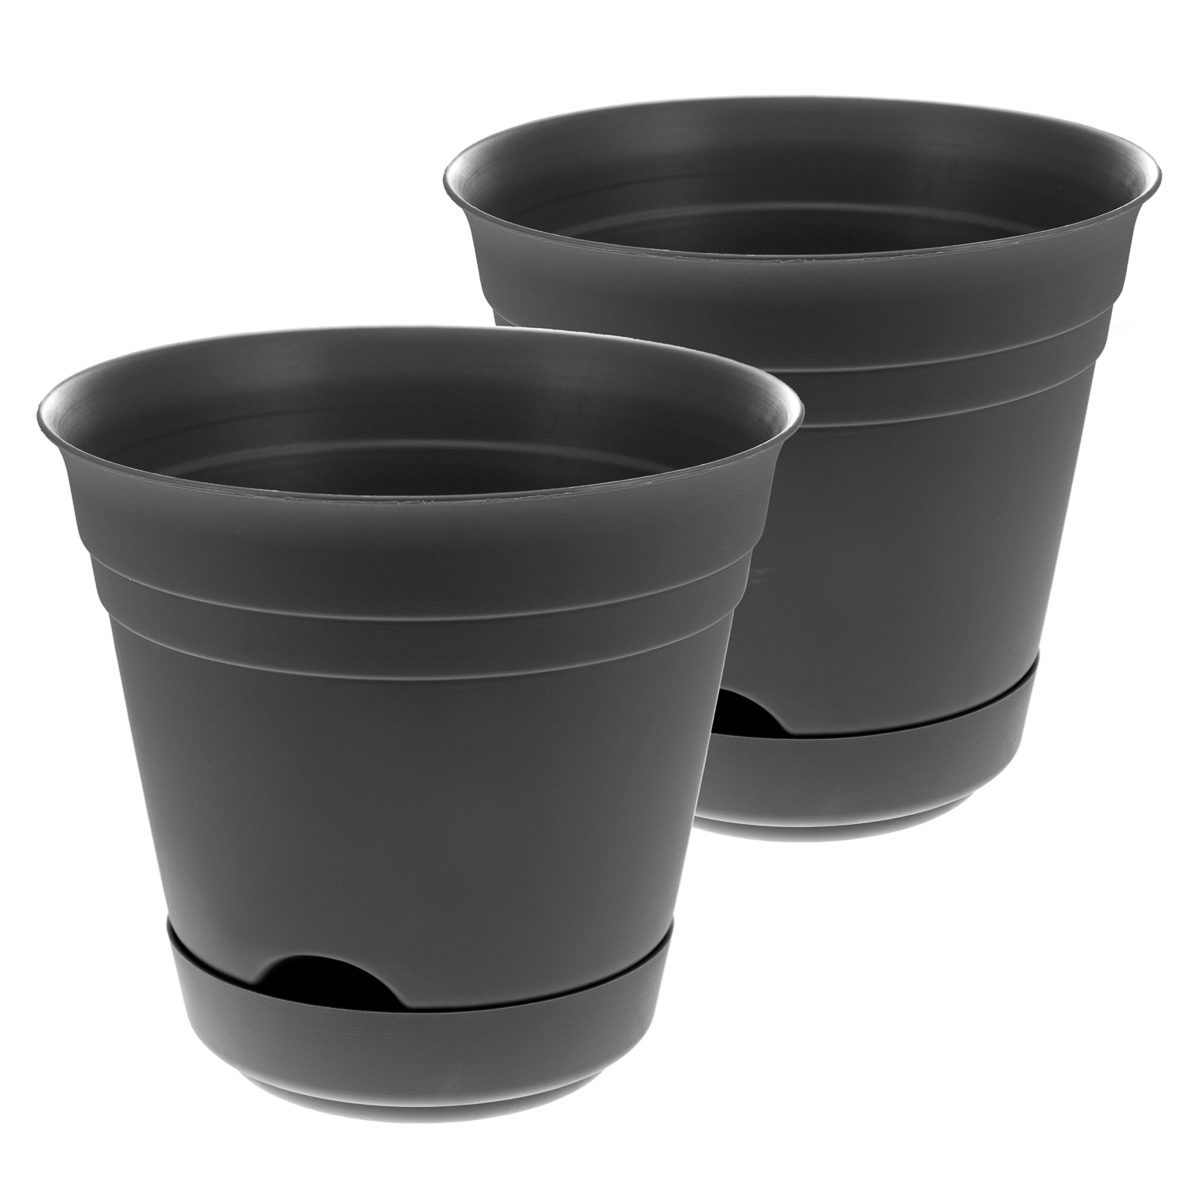 2 Self Watering Planters Indoor/Outdoor 7u201d Plastic Patio Garden Flower Herb  Pots